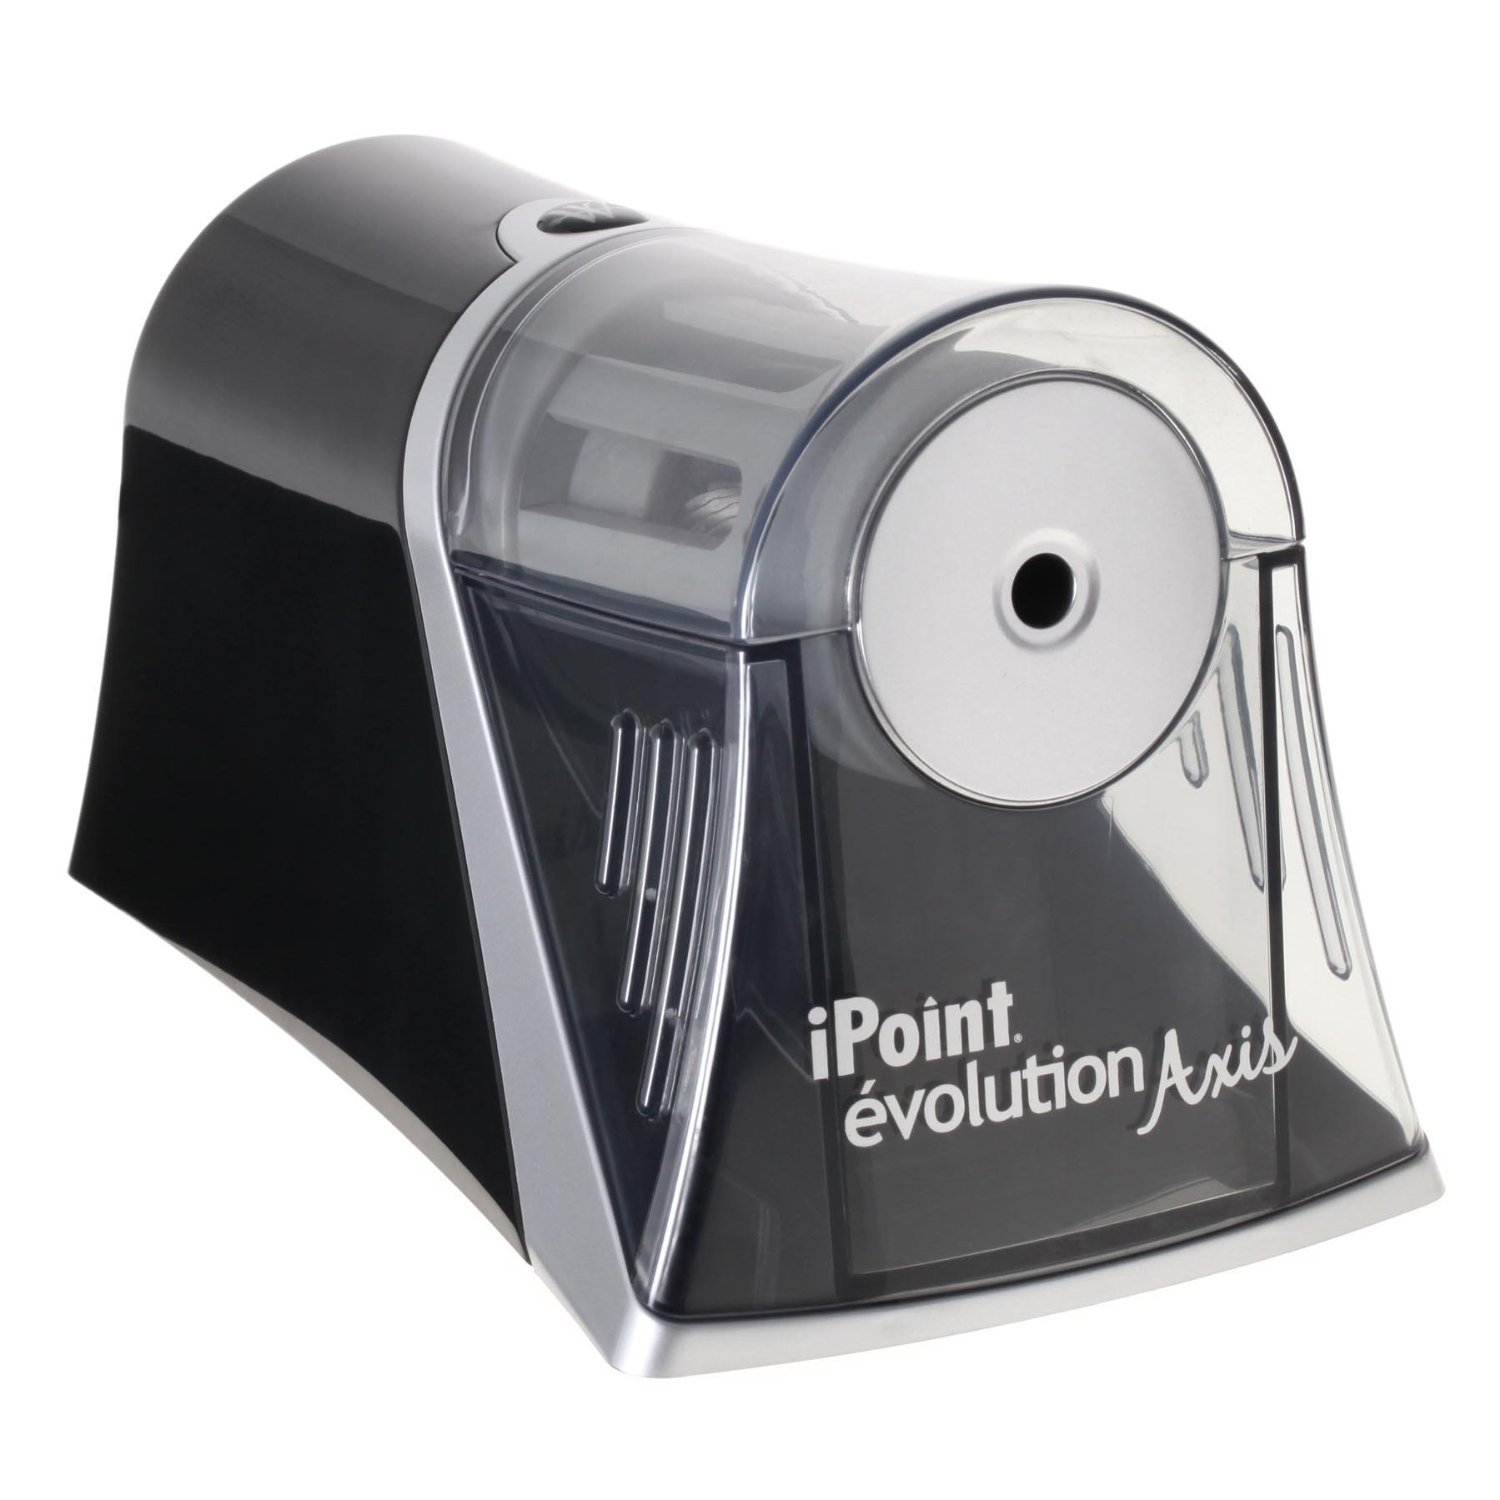 Westcott Axis iPoint Evolution Electric Pencil Sharpener for Home or Office, Case of 12 (15510)